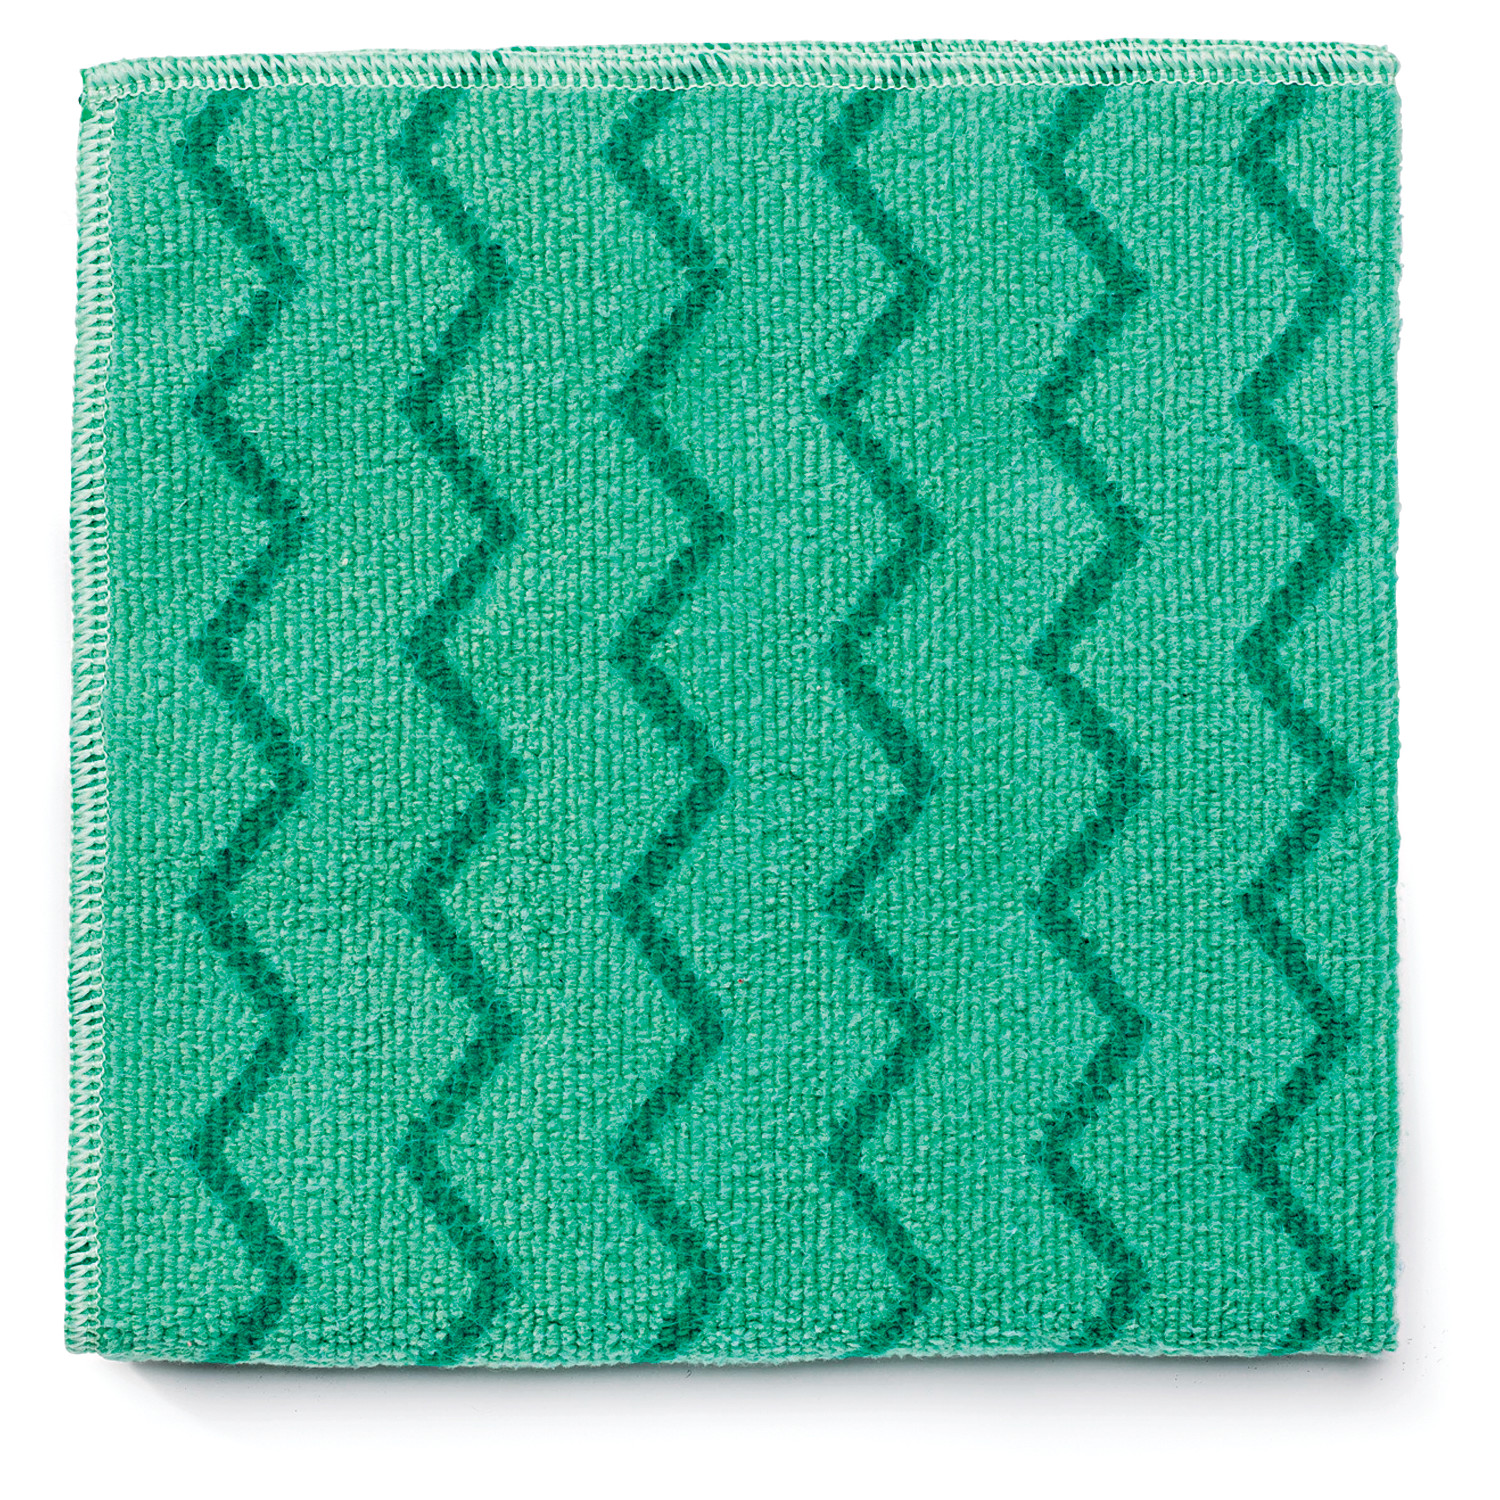 Rubbermaid Commercial Green Microfiber Reusable Cleaning Cloths, 12 ct